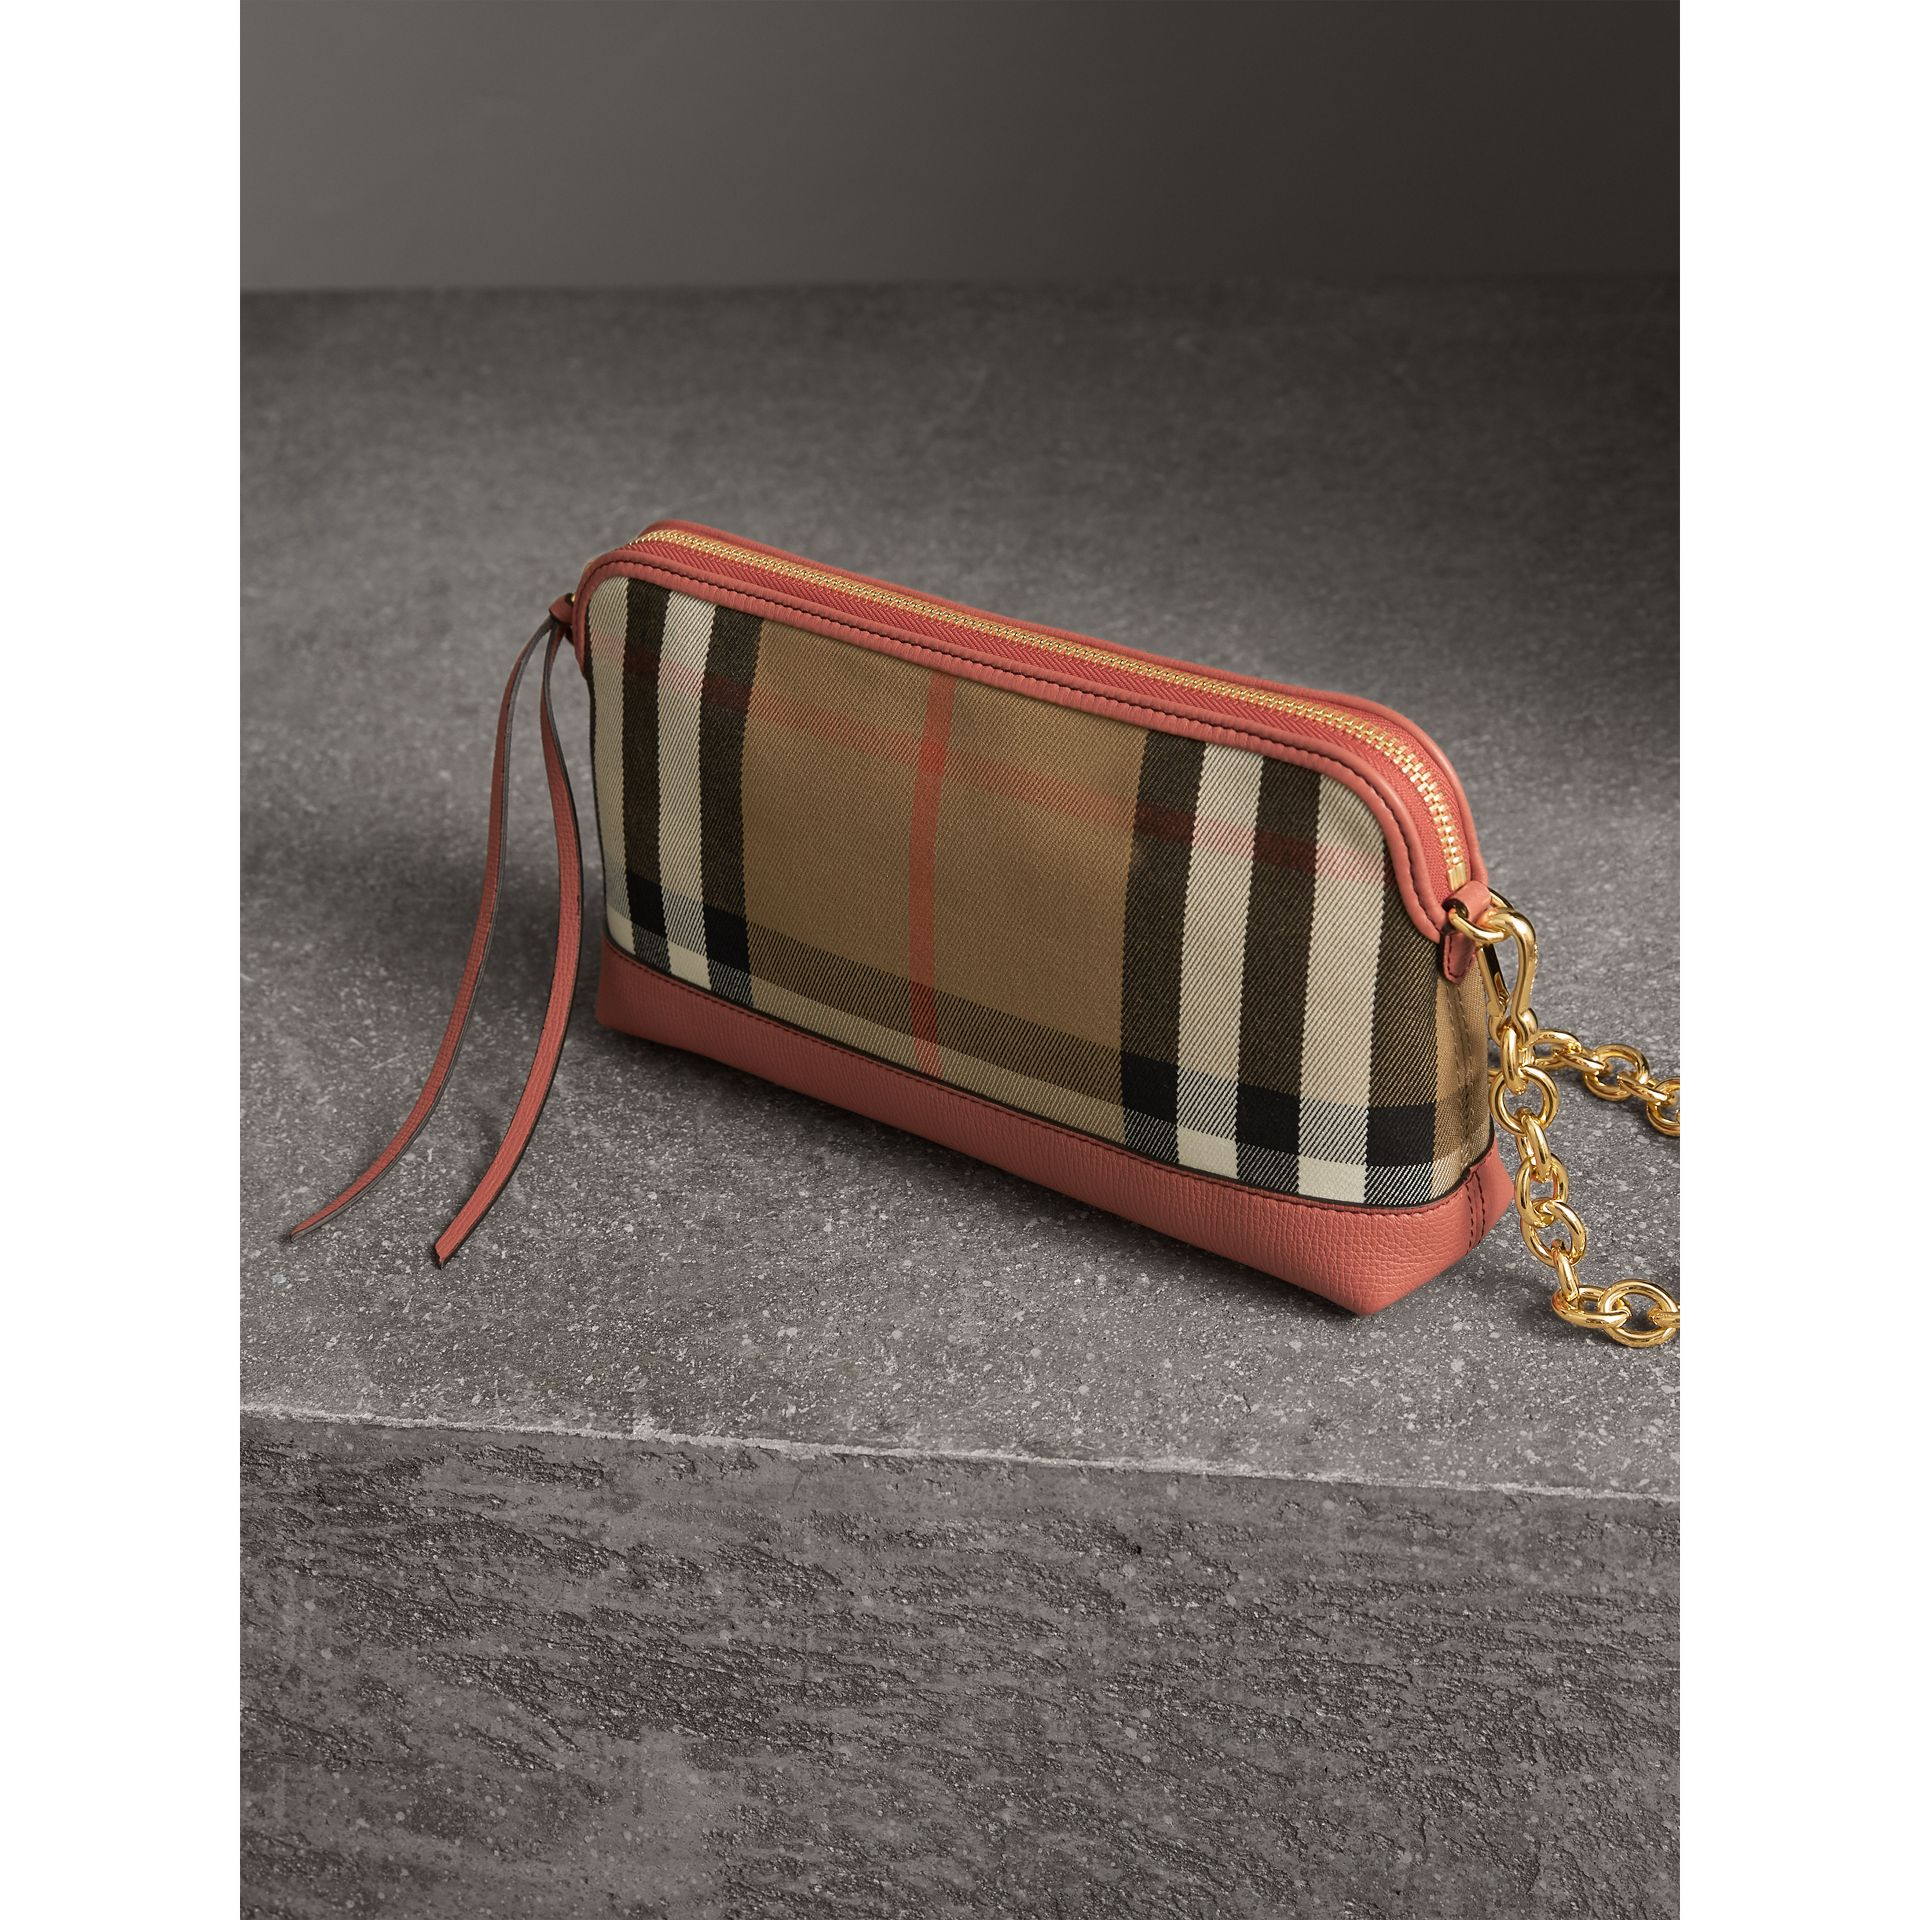 House Check and Leather Clutch Bag in Cinnamon Red - Women | Burberry - gallery image 7